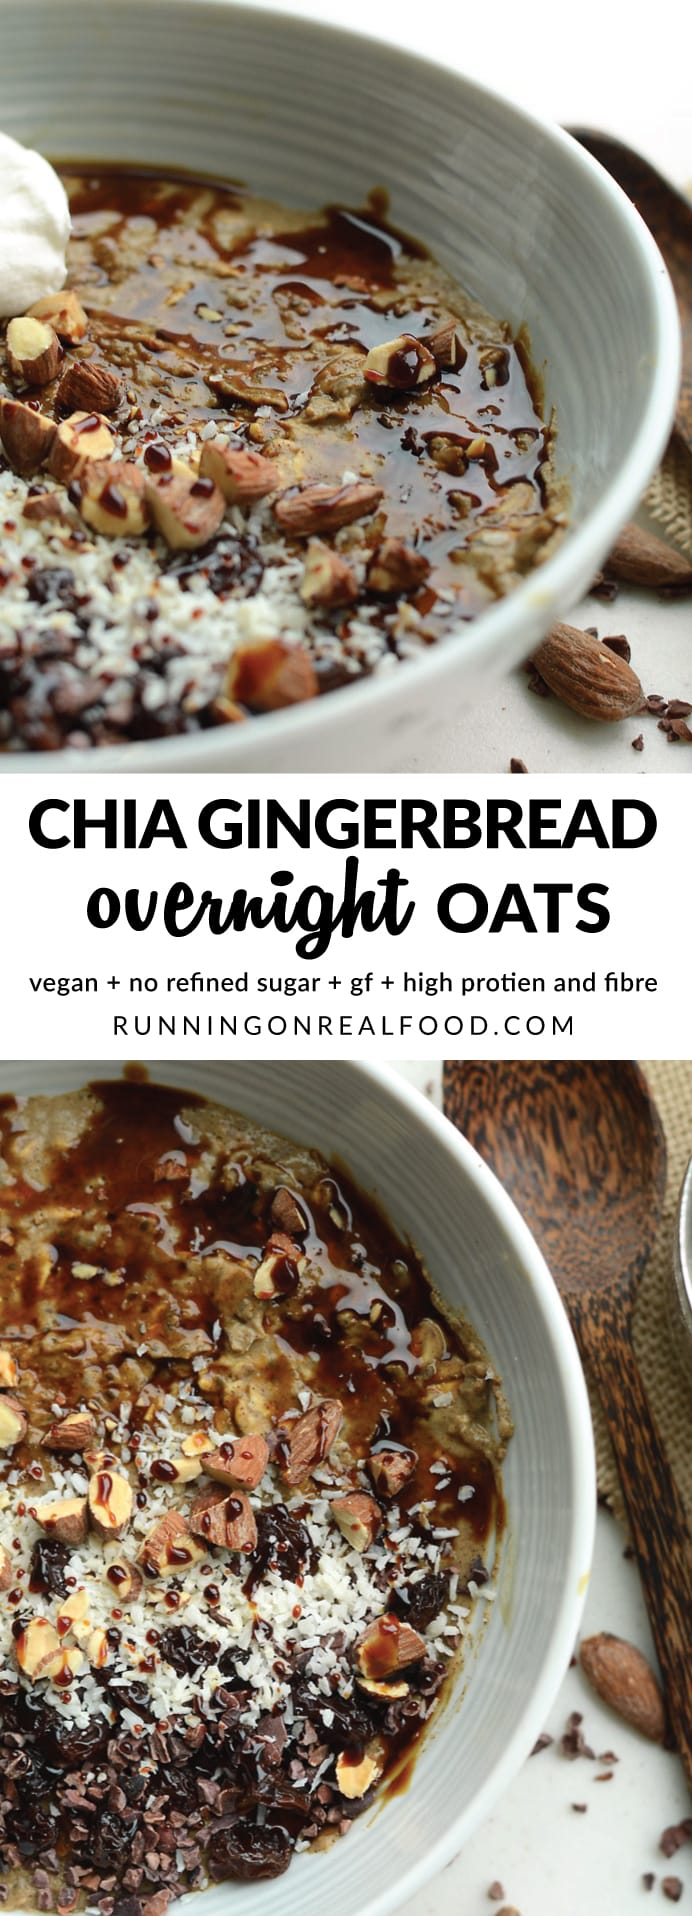 These incredible gingerbread overnight oats with protein and chia seed taste like gingerbread cookie dough! High in fibre and plant-based protein, healthy fats from chia seeds and energizing carbohydrates from oats and molasses. If you love gingerbread, you will love these overnight oats! Vegan, gluten-free, no refined sugar.